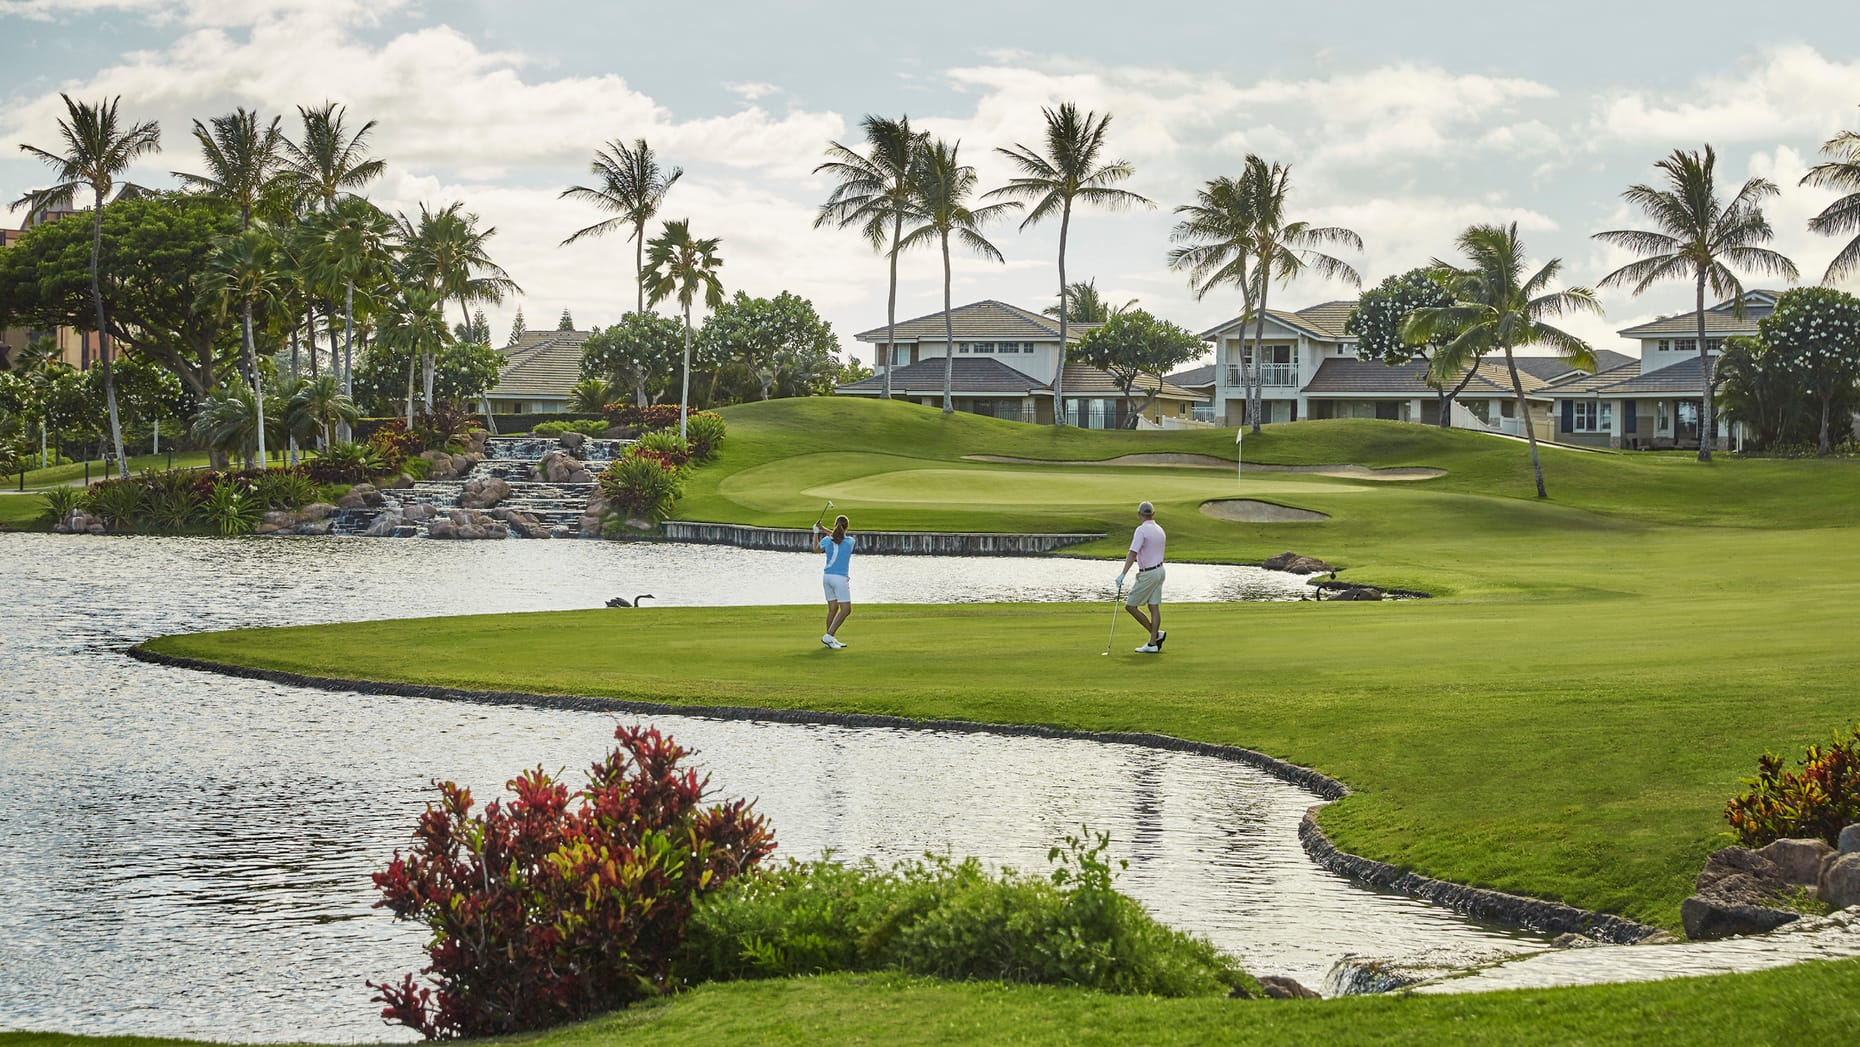 FS Oahu golf course.jpg